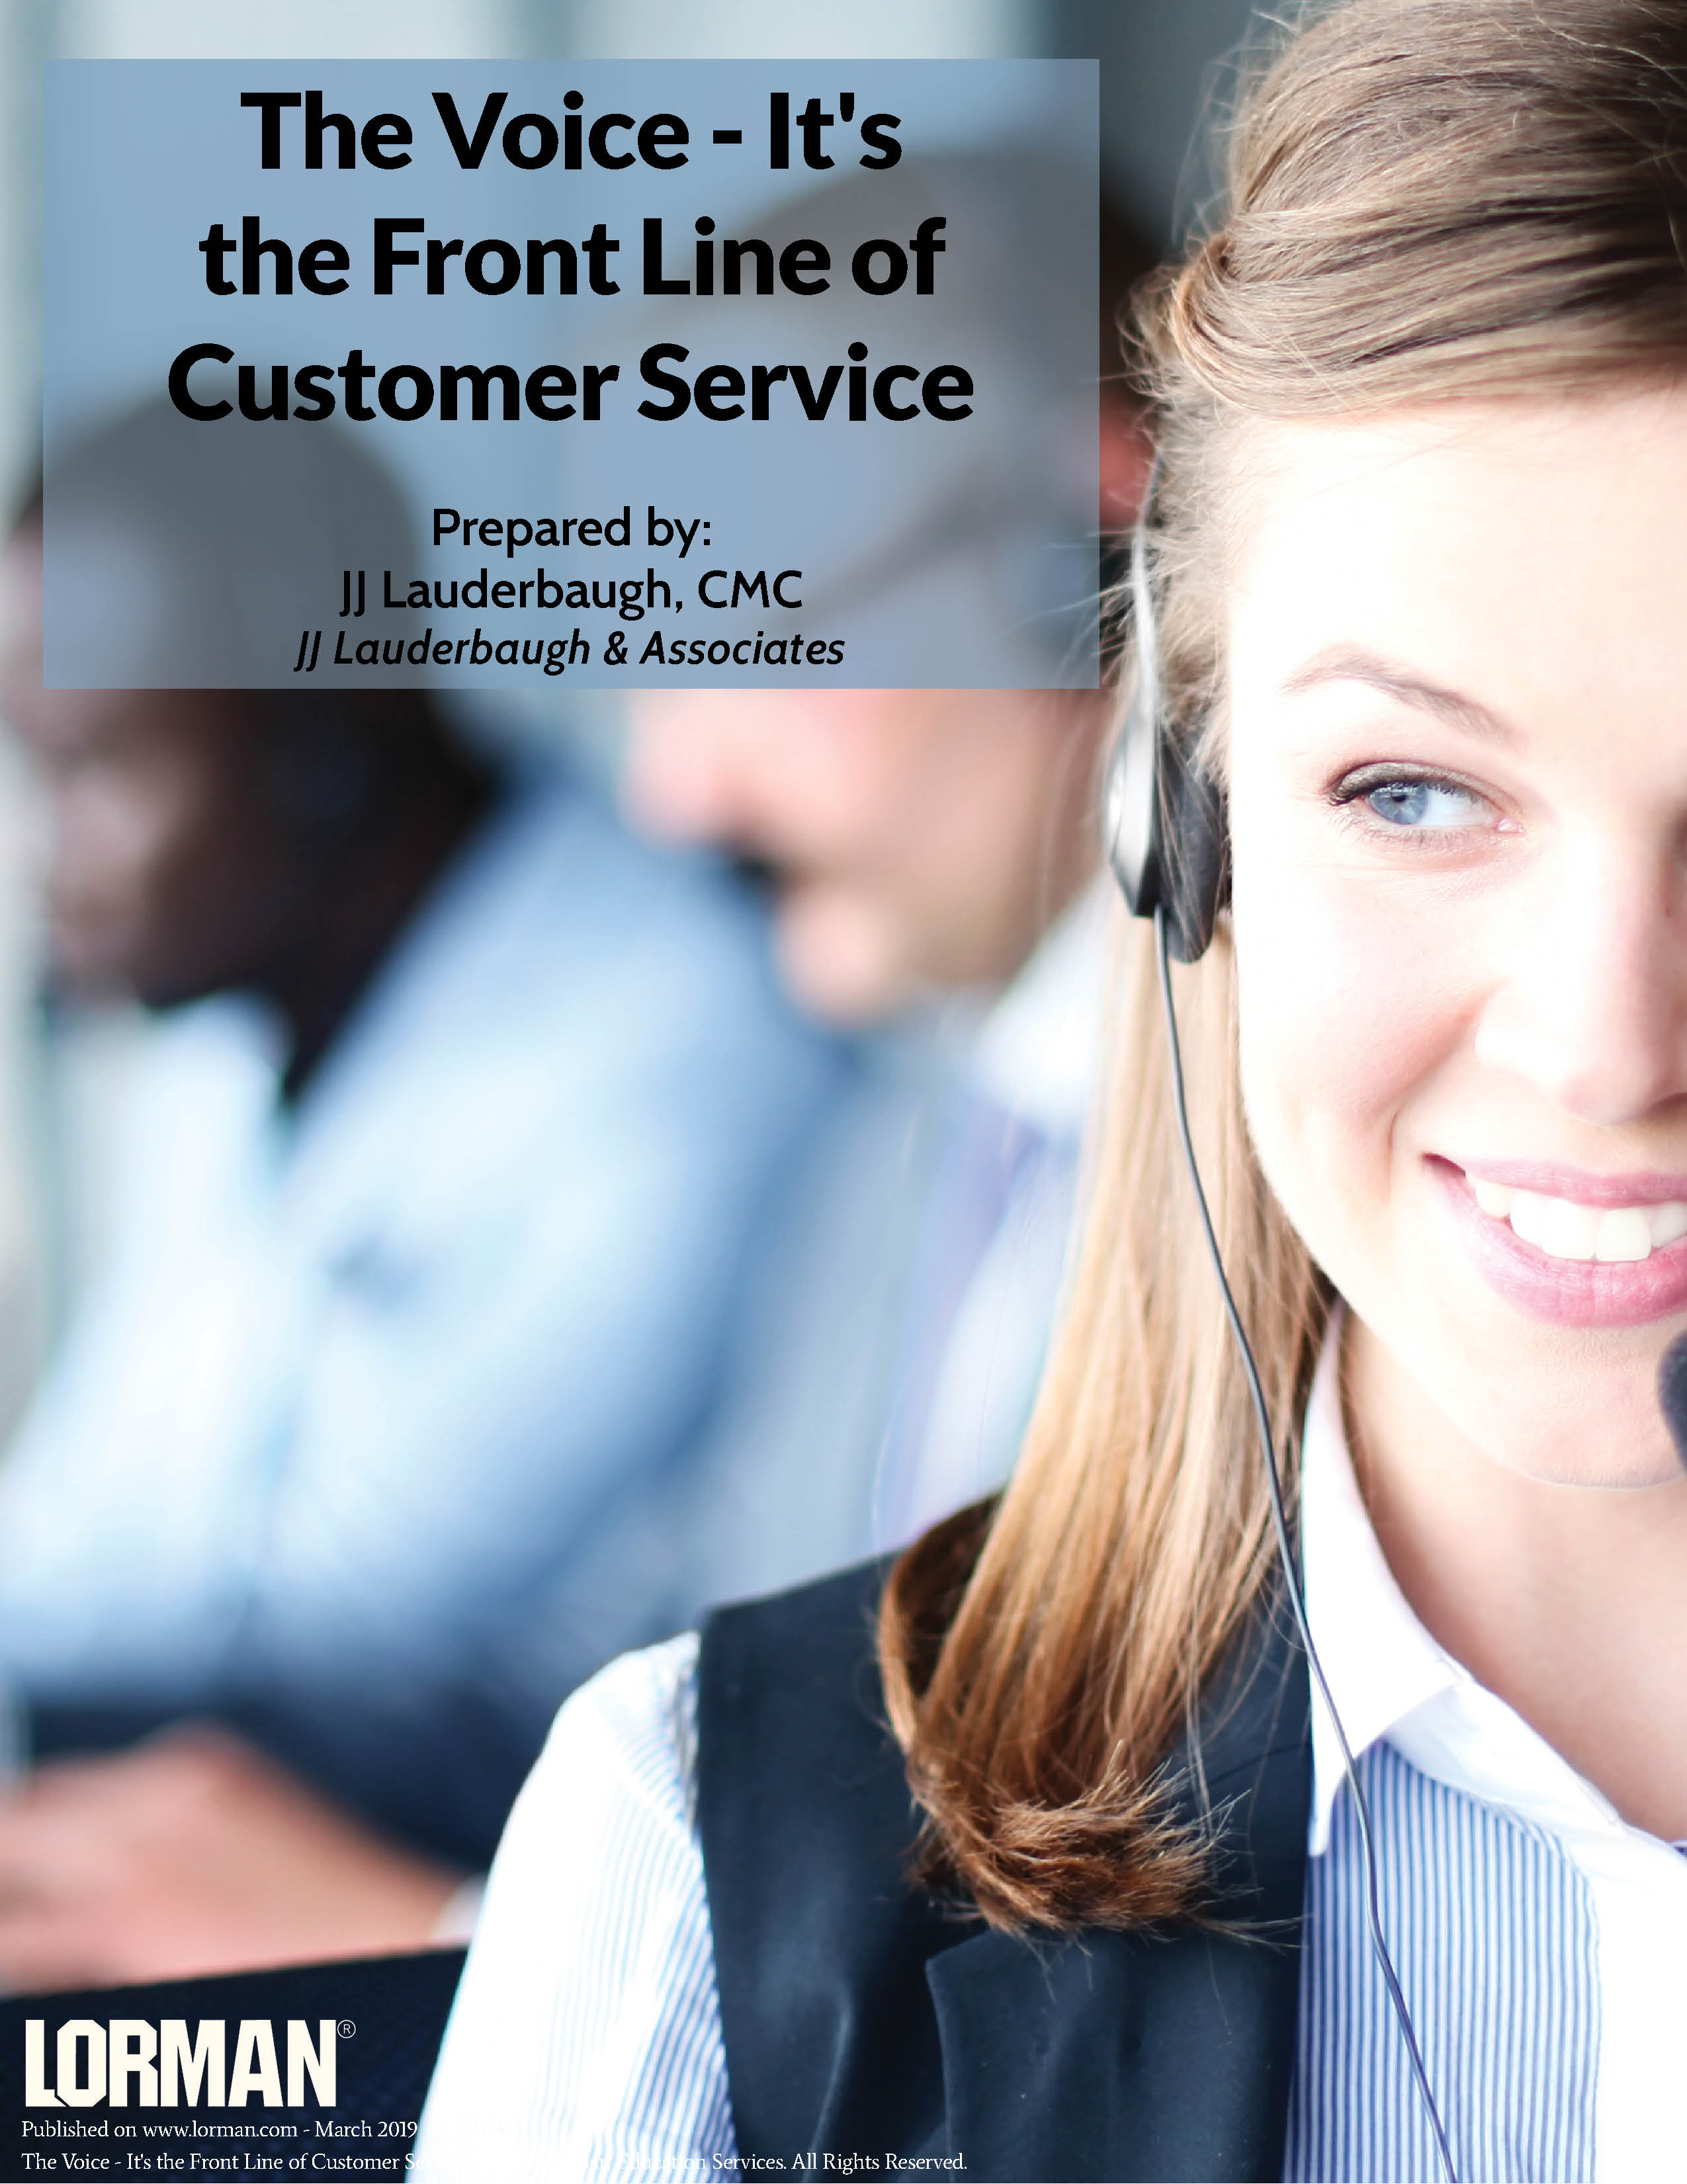 The Voice - It's the Front Line of Customer Service